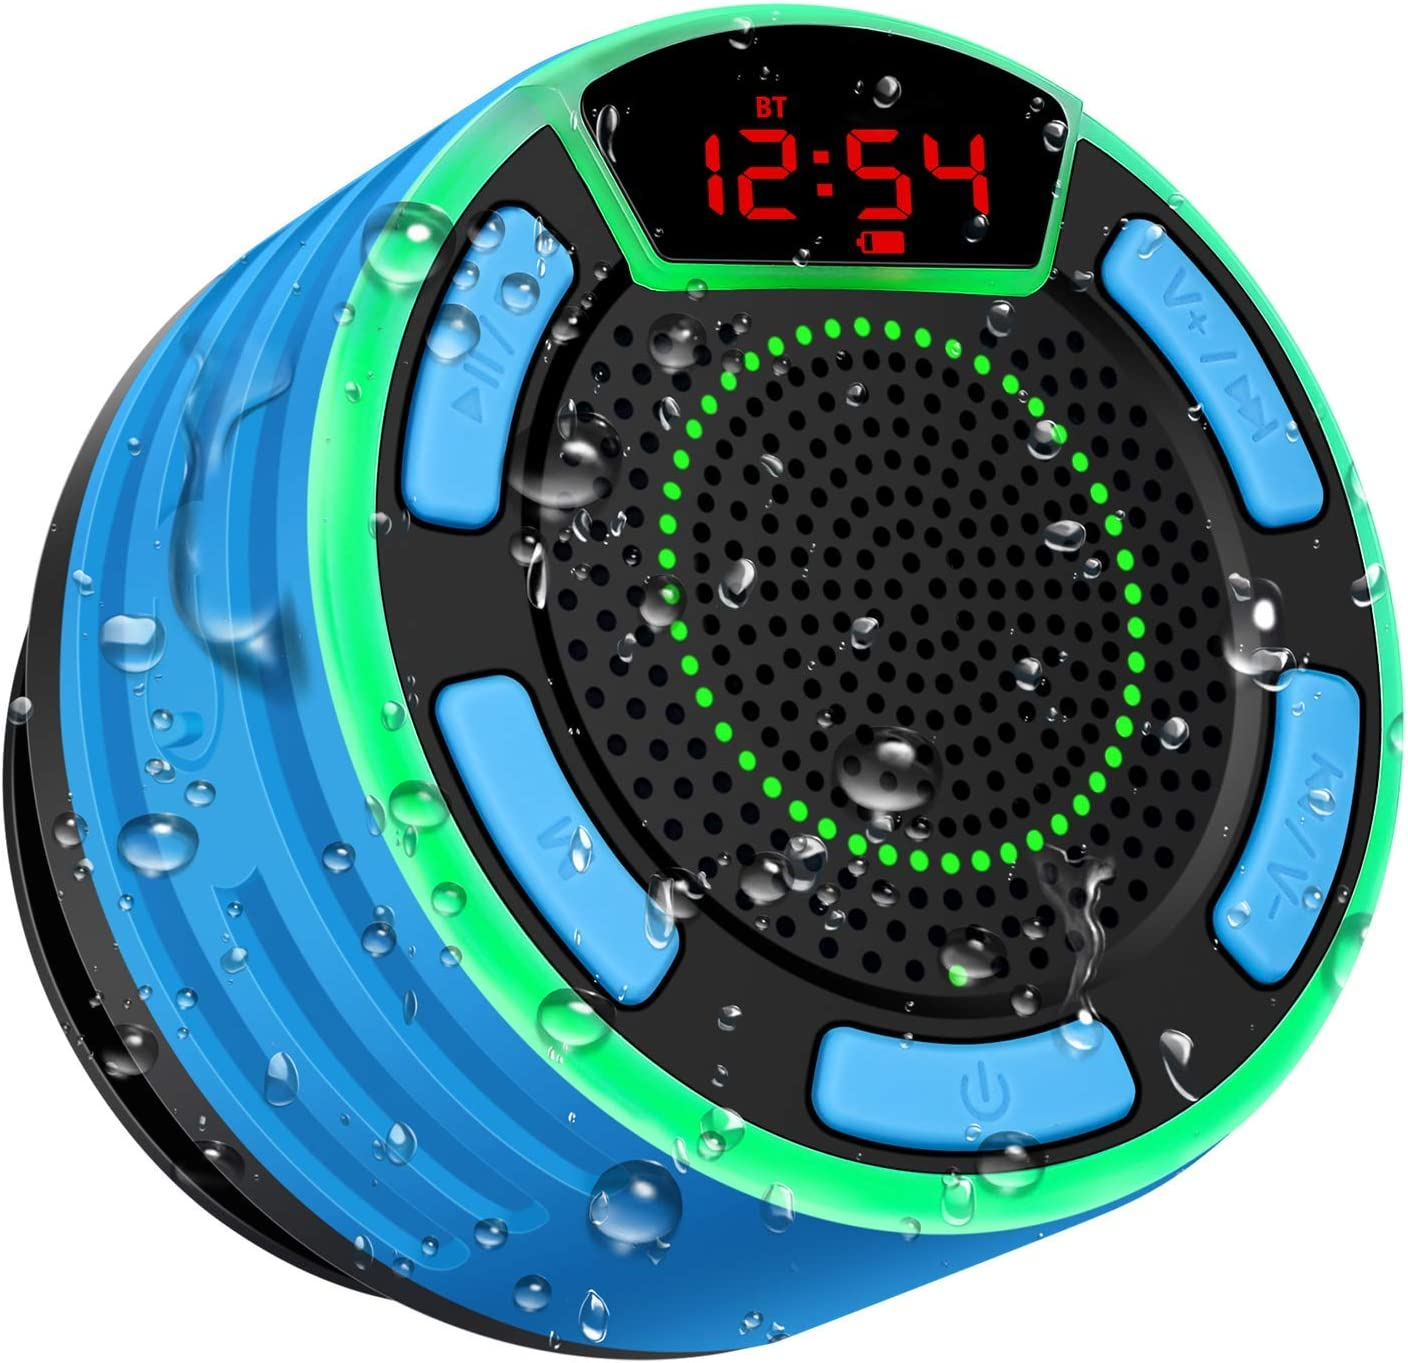 BassPal IPX7 Waterproof Portable Shower Speaker